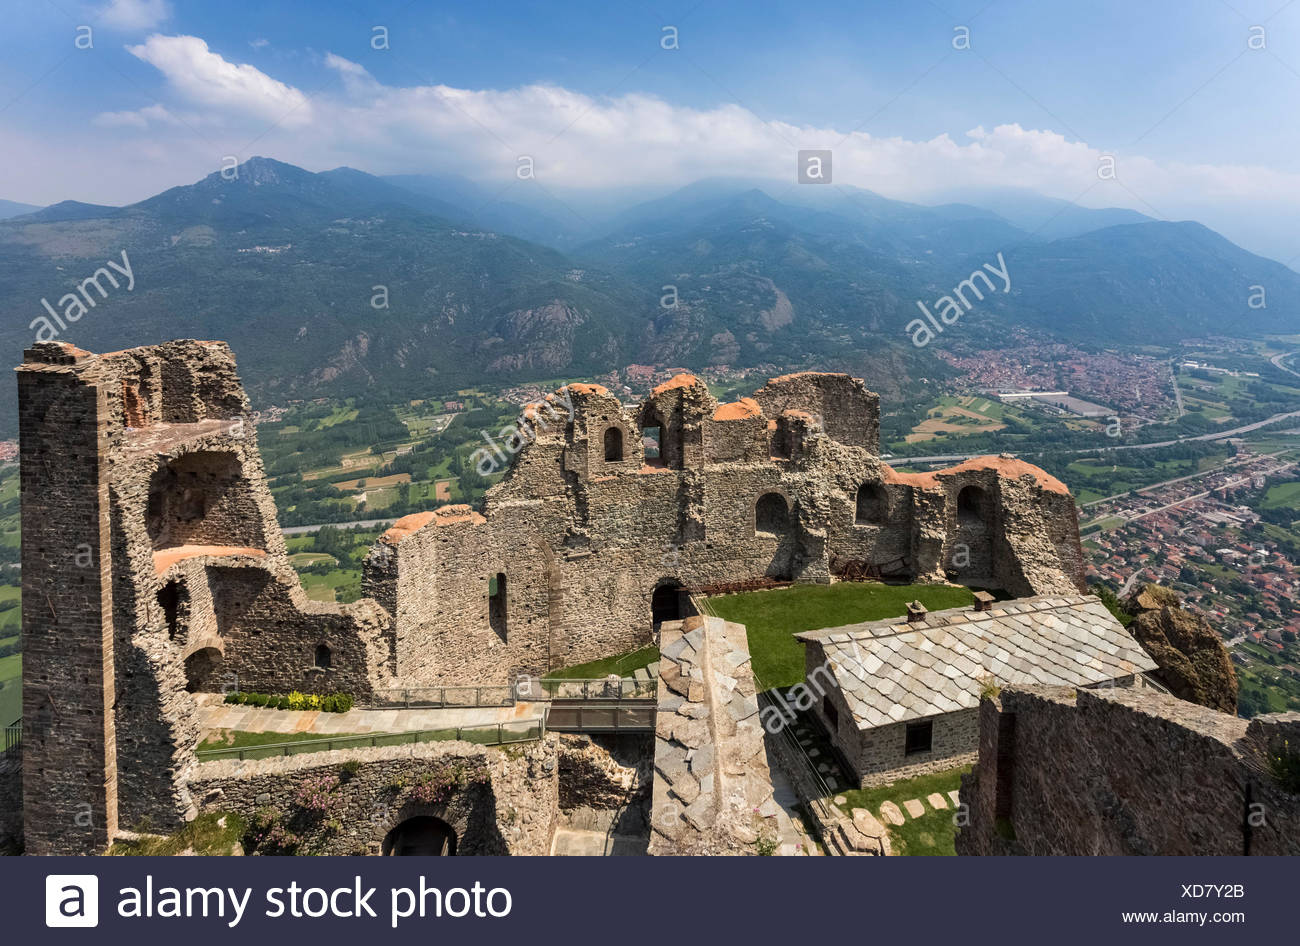 https://c8.alamy.com/comp/XD7Y2B/view-of-the-torre-della-bellalda-and-the-ruins-of-the-new-monastery-sacra-di-san-michele-santambrogio-di-torino-val-di-susa-torino-district-piedmont-italy-XD7Y2B.jpg